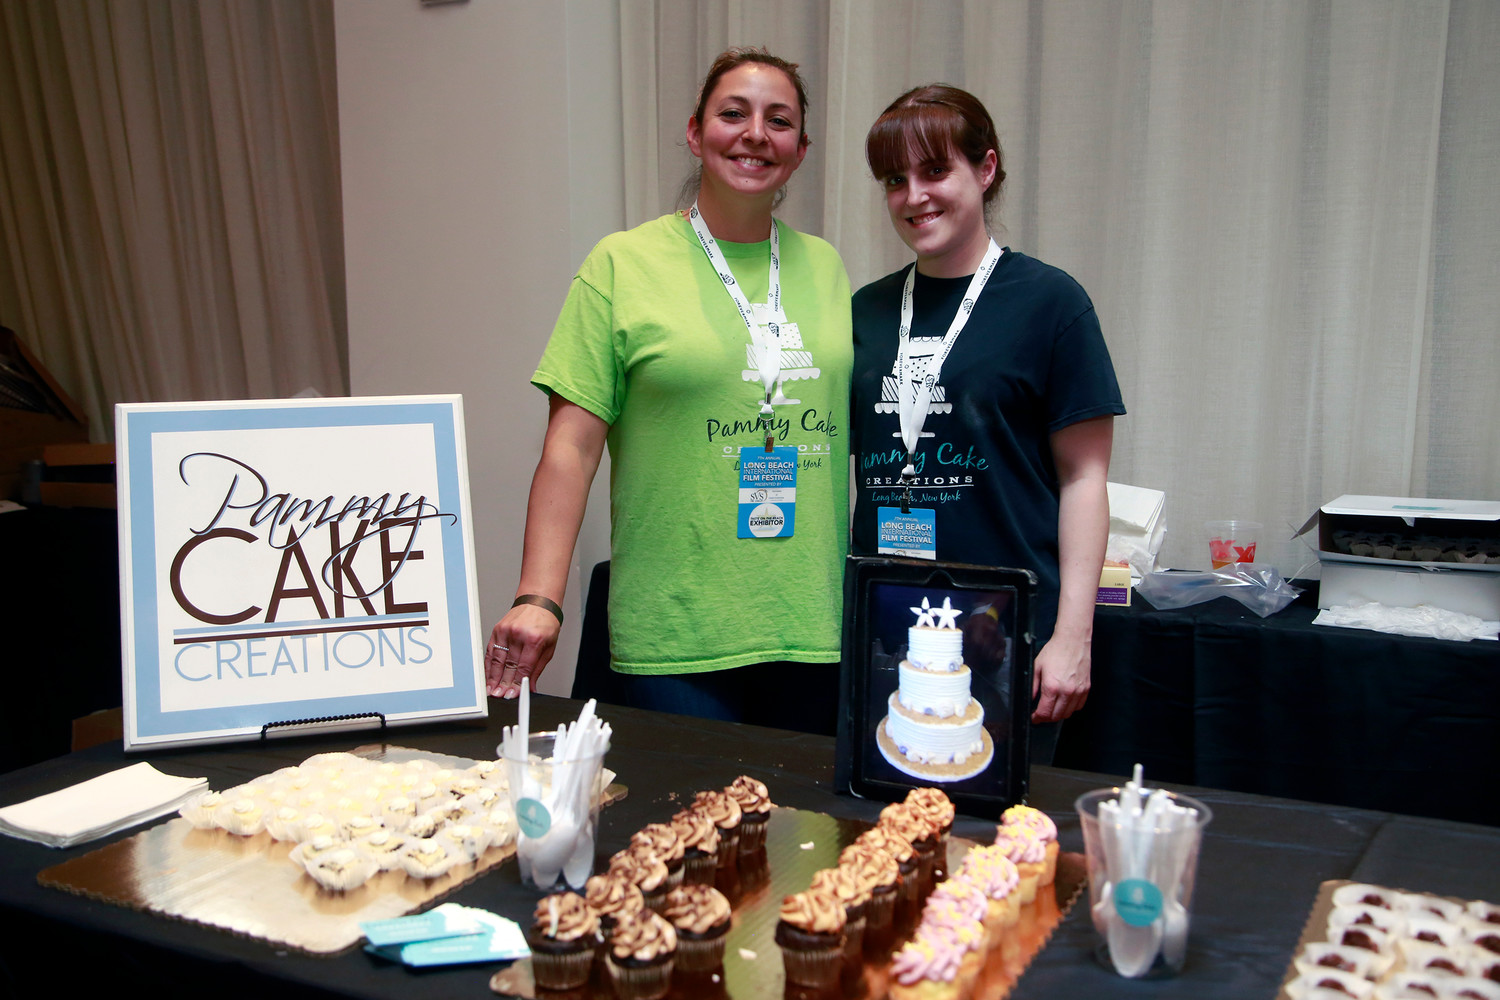 Pammy Cake Creations owner Pam Kreutzberg, left, and Rachael Logatto served their most popular desserts, including cheesecake, chocolate flourless cake, and coconut, raspberry and caramel cupcakes.